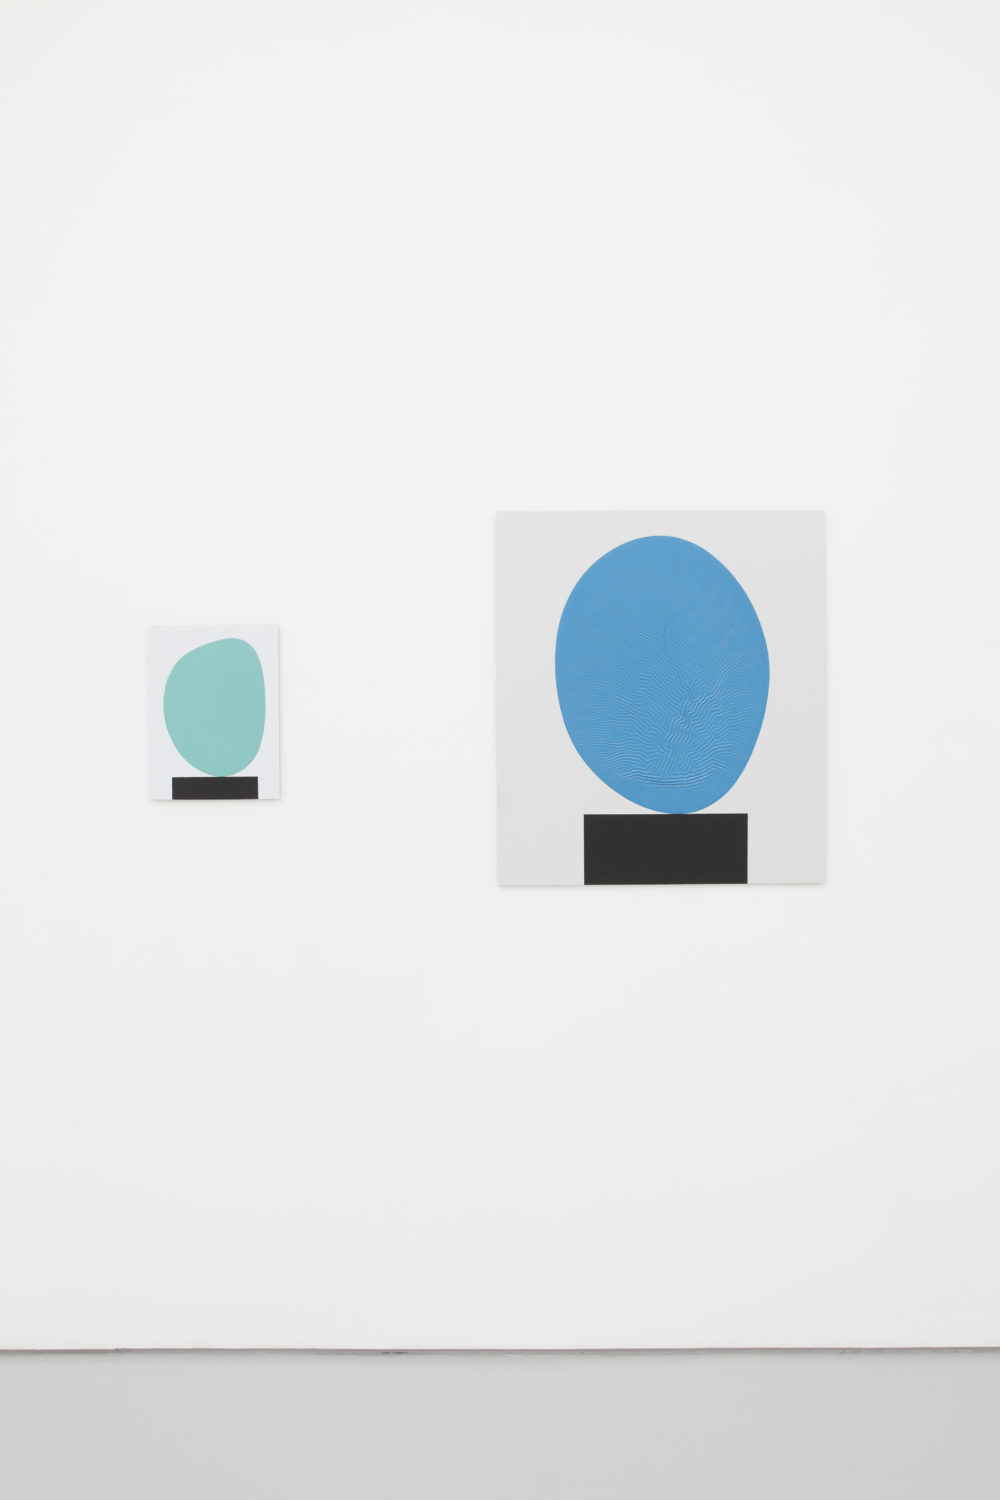 Installation view of David Batchelor Flatlands (2013). Two works side by side. Each work is a painting of a blue blob balancing on a black rectangle.